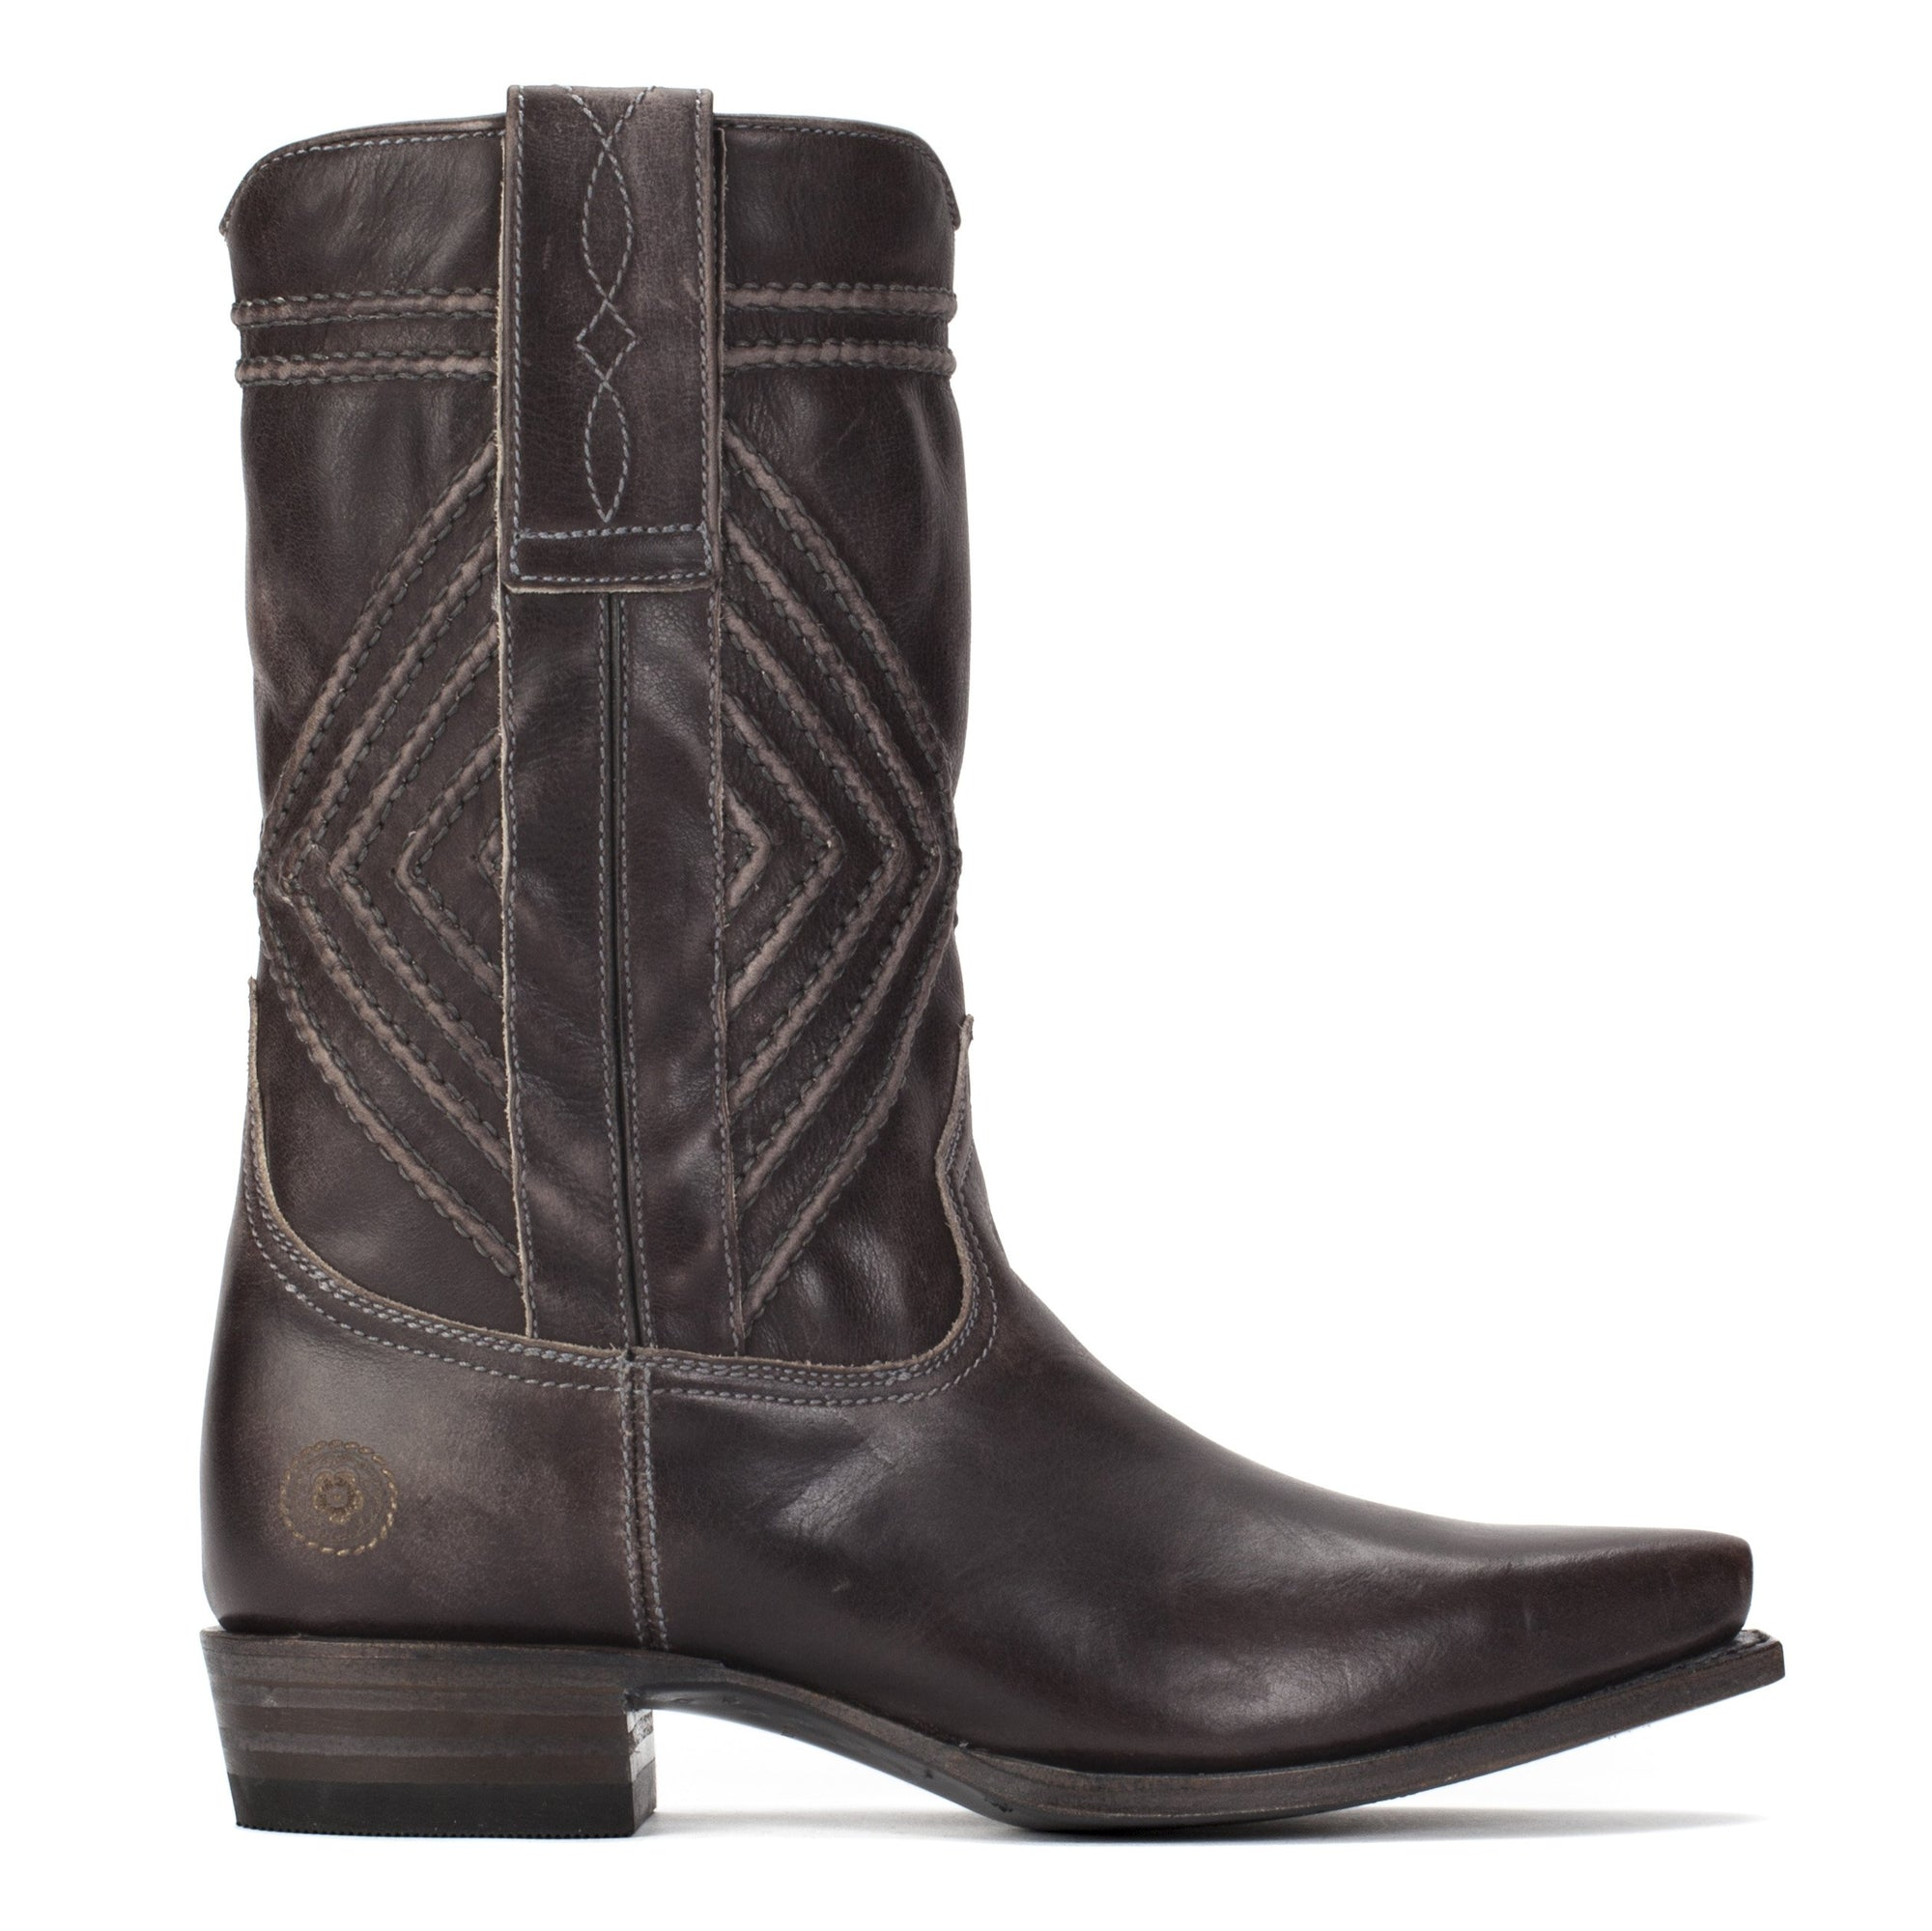 Boot - Fayette Grey